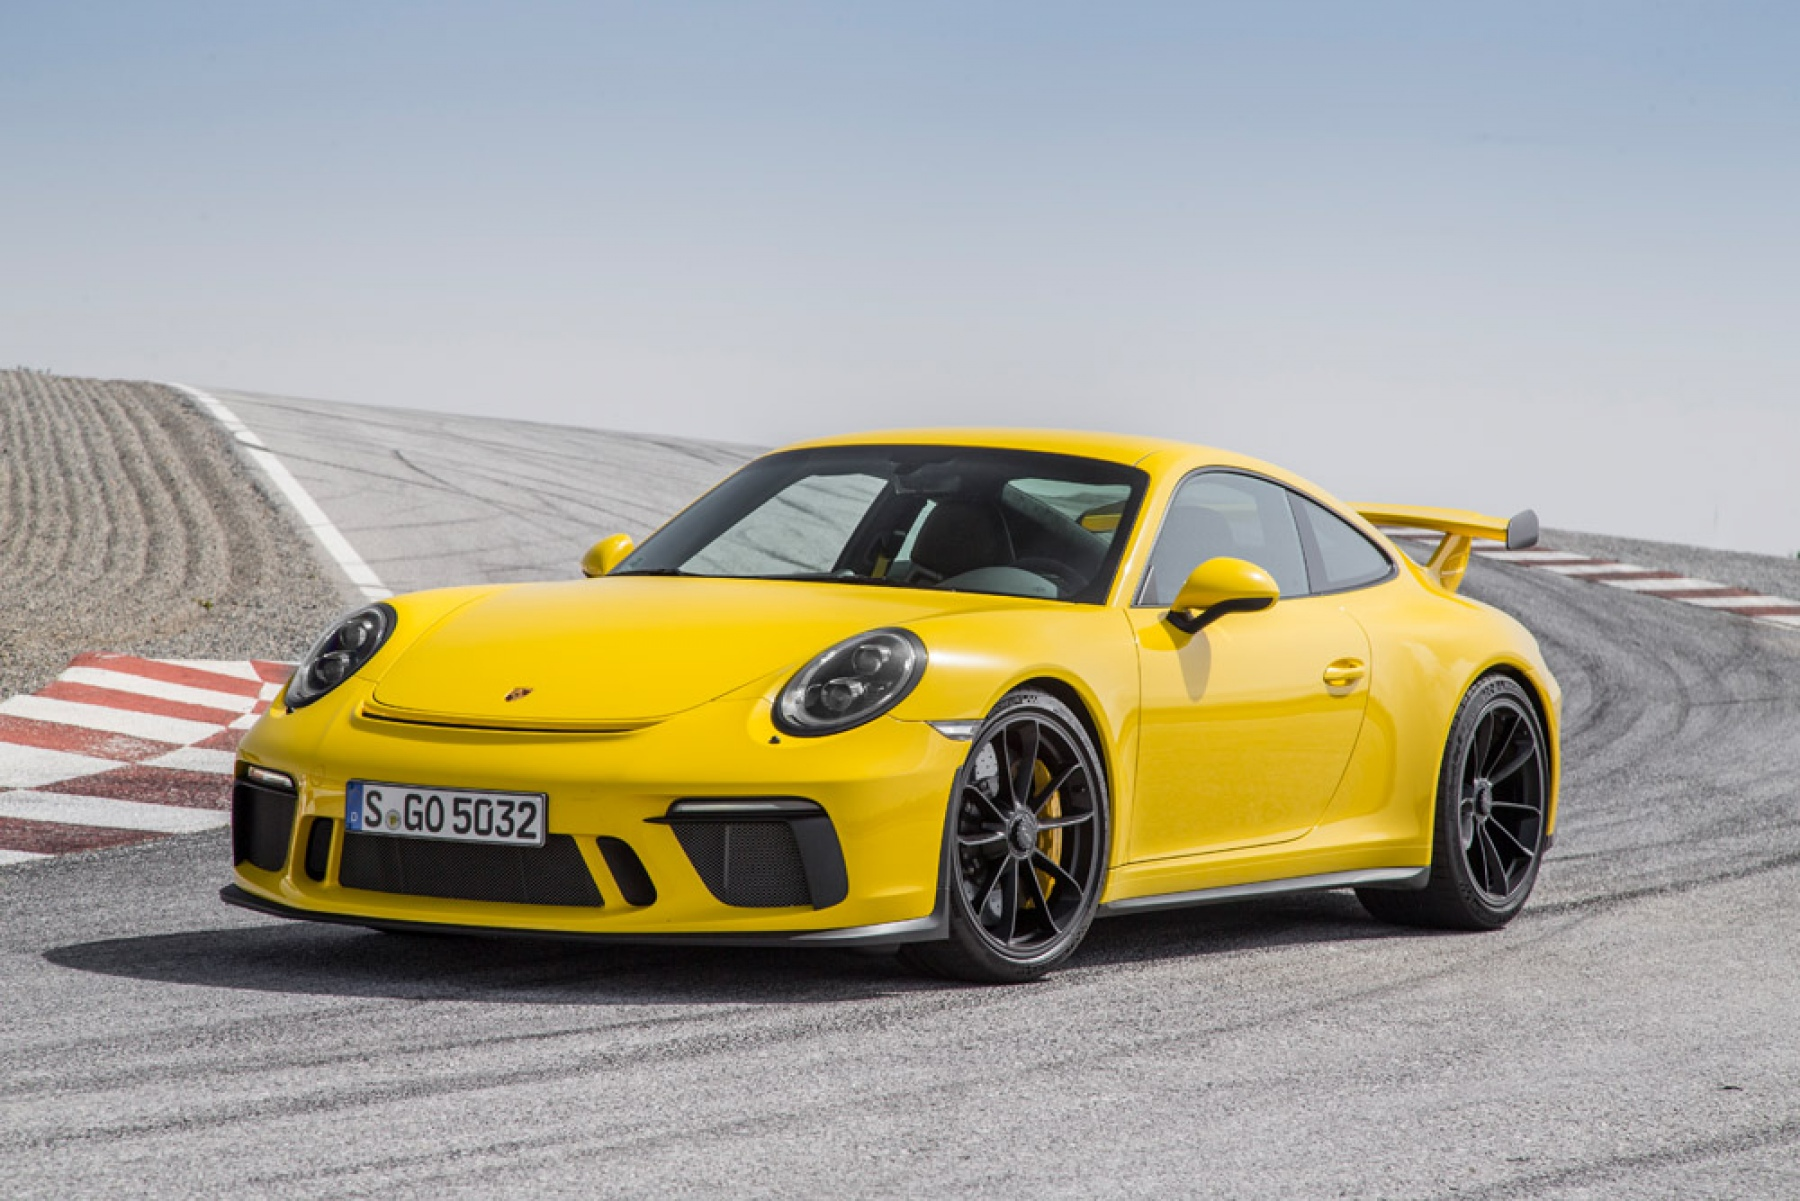 Porsche 911 GT3 Racing Yellow - The new Porsche 911 GT3